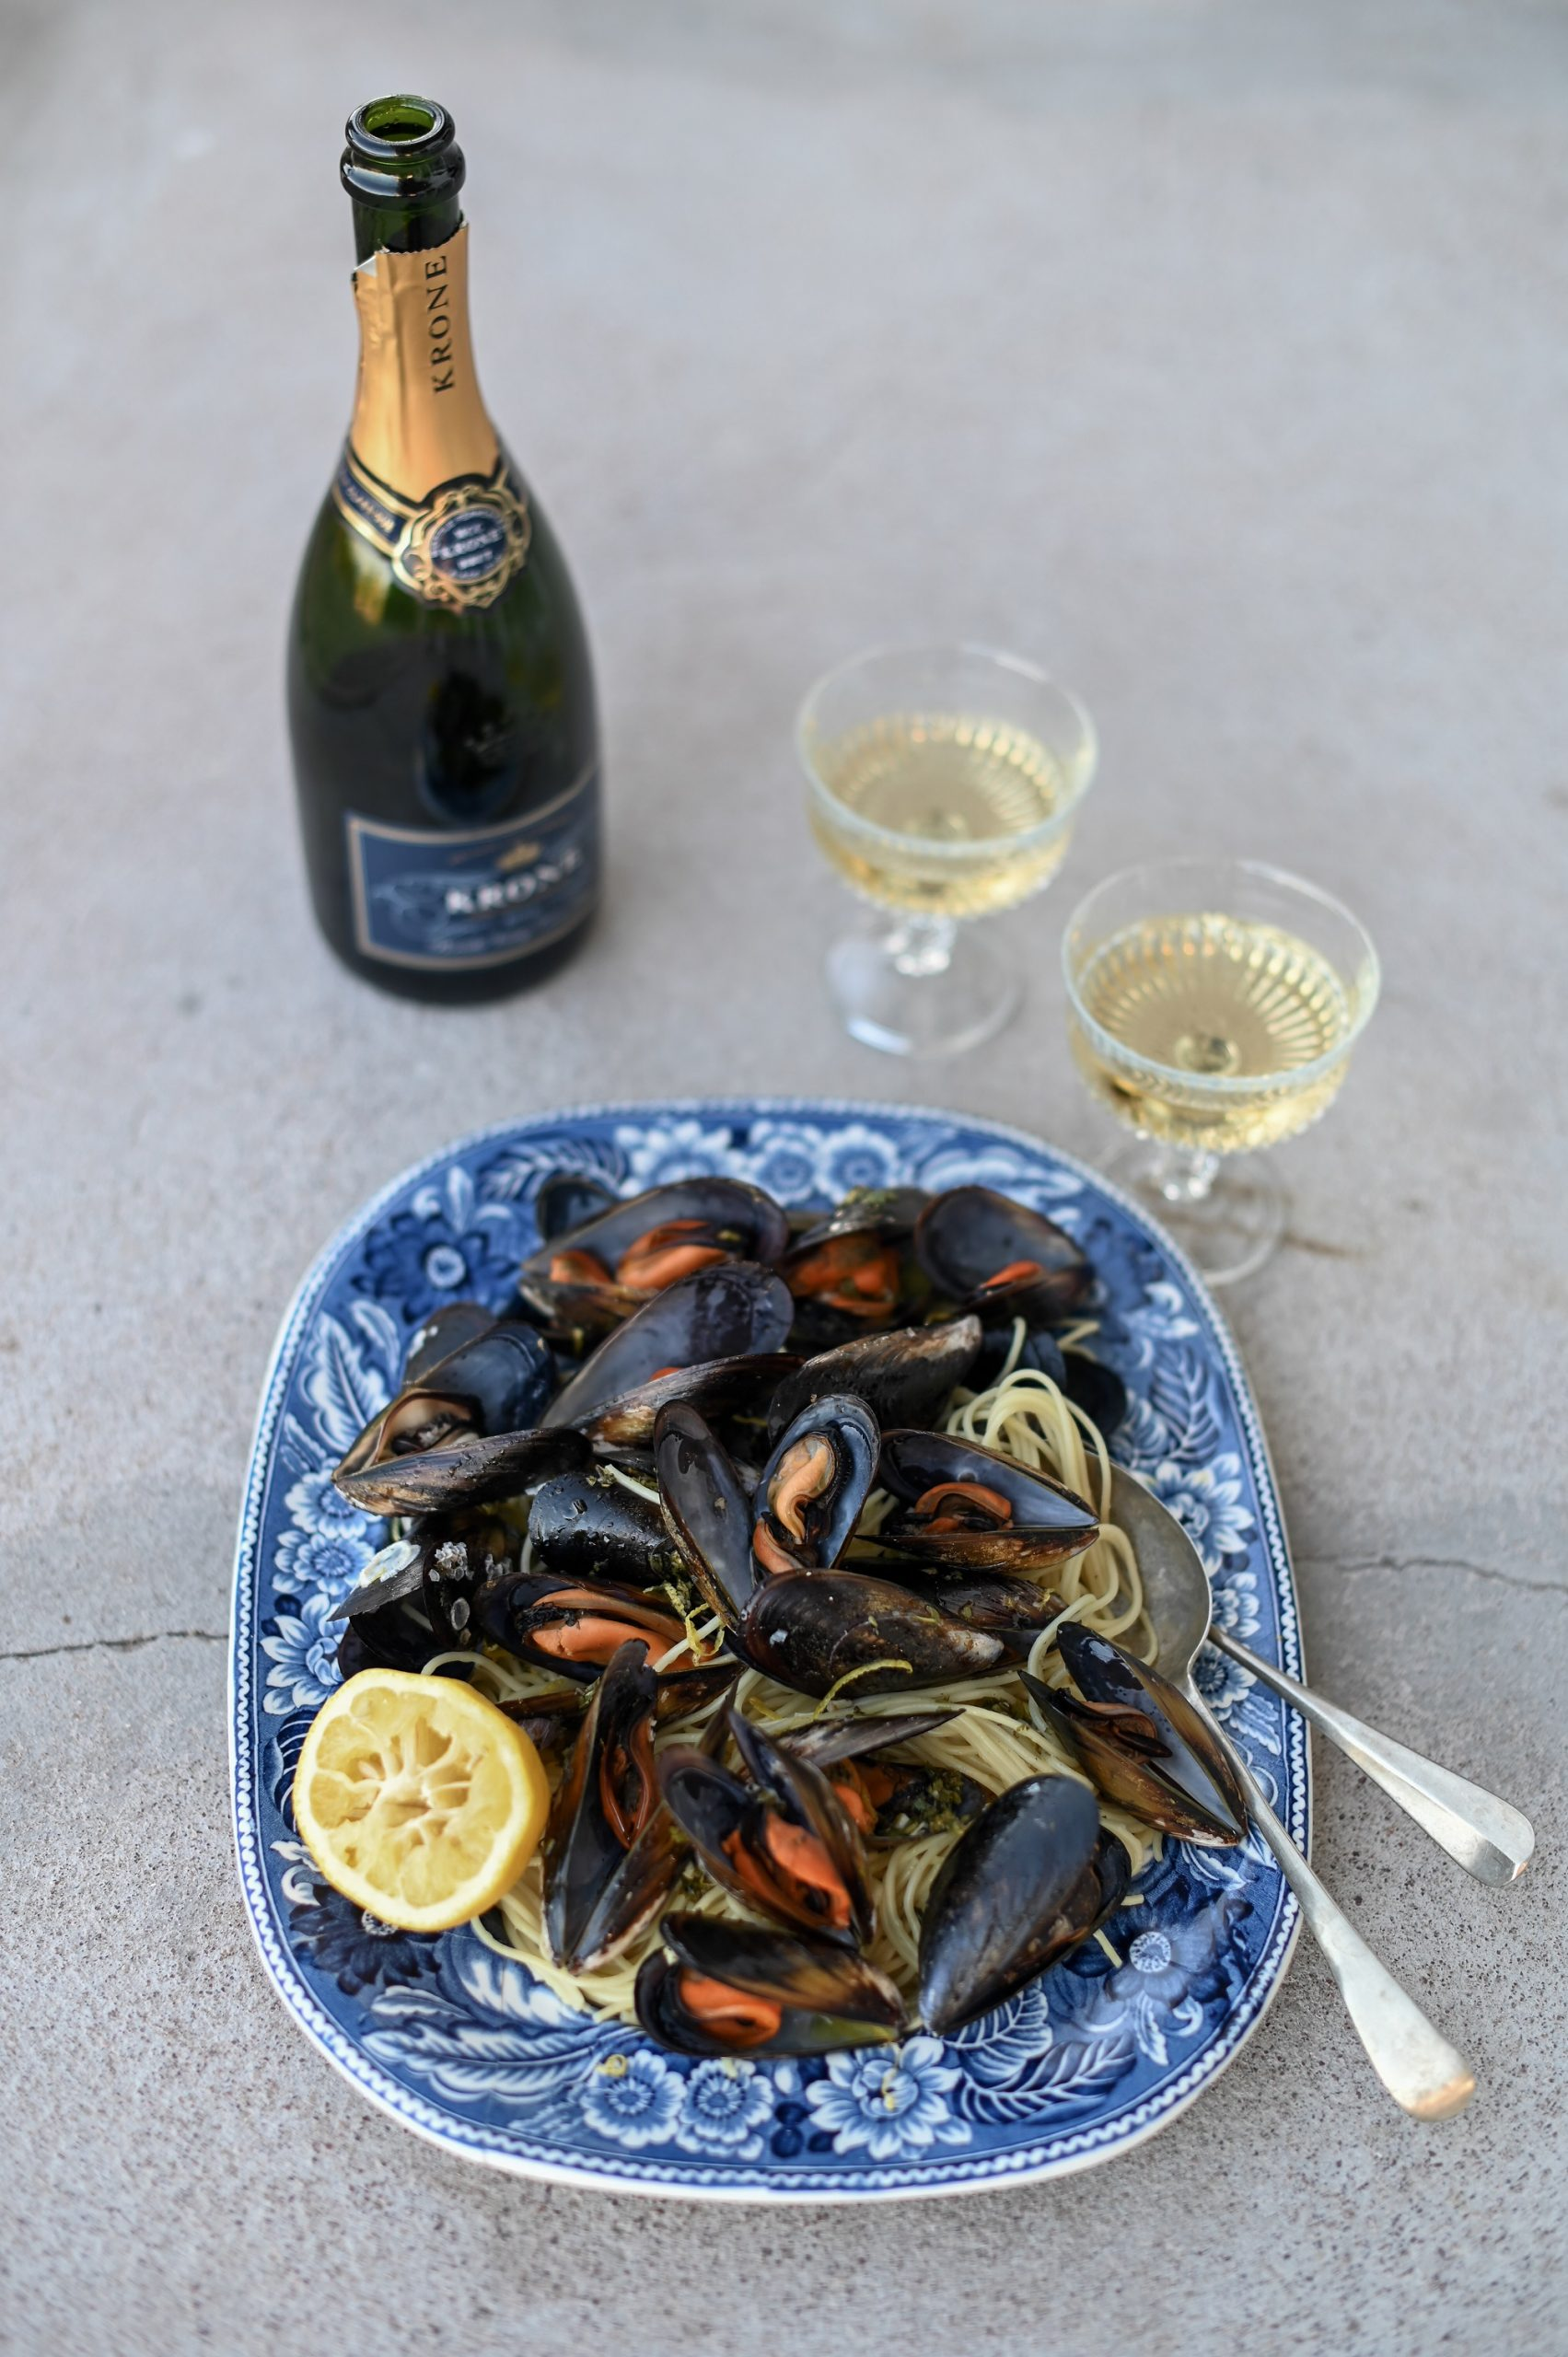 Seaside-inspired Seafood Spoils photo